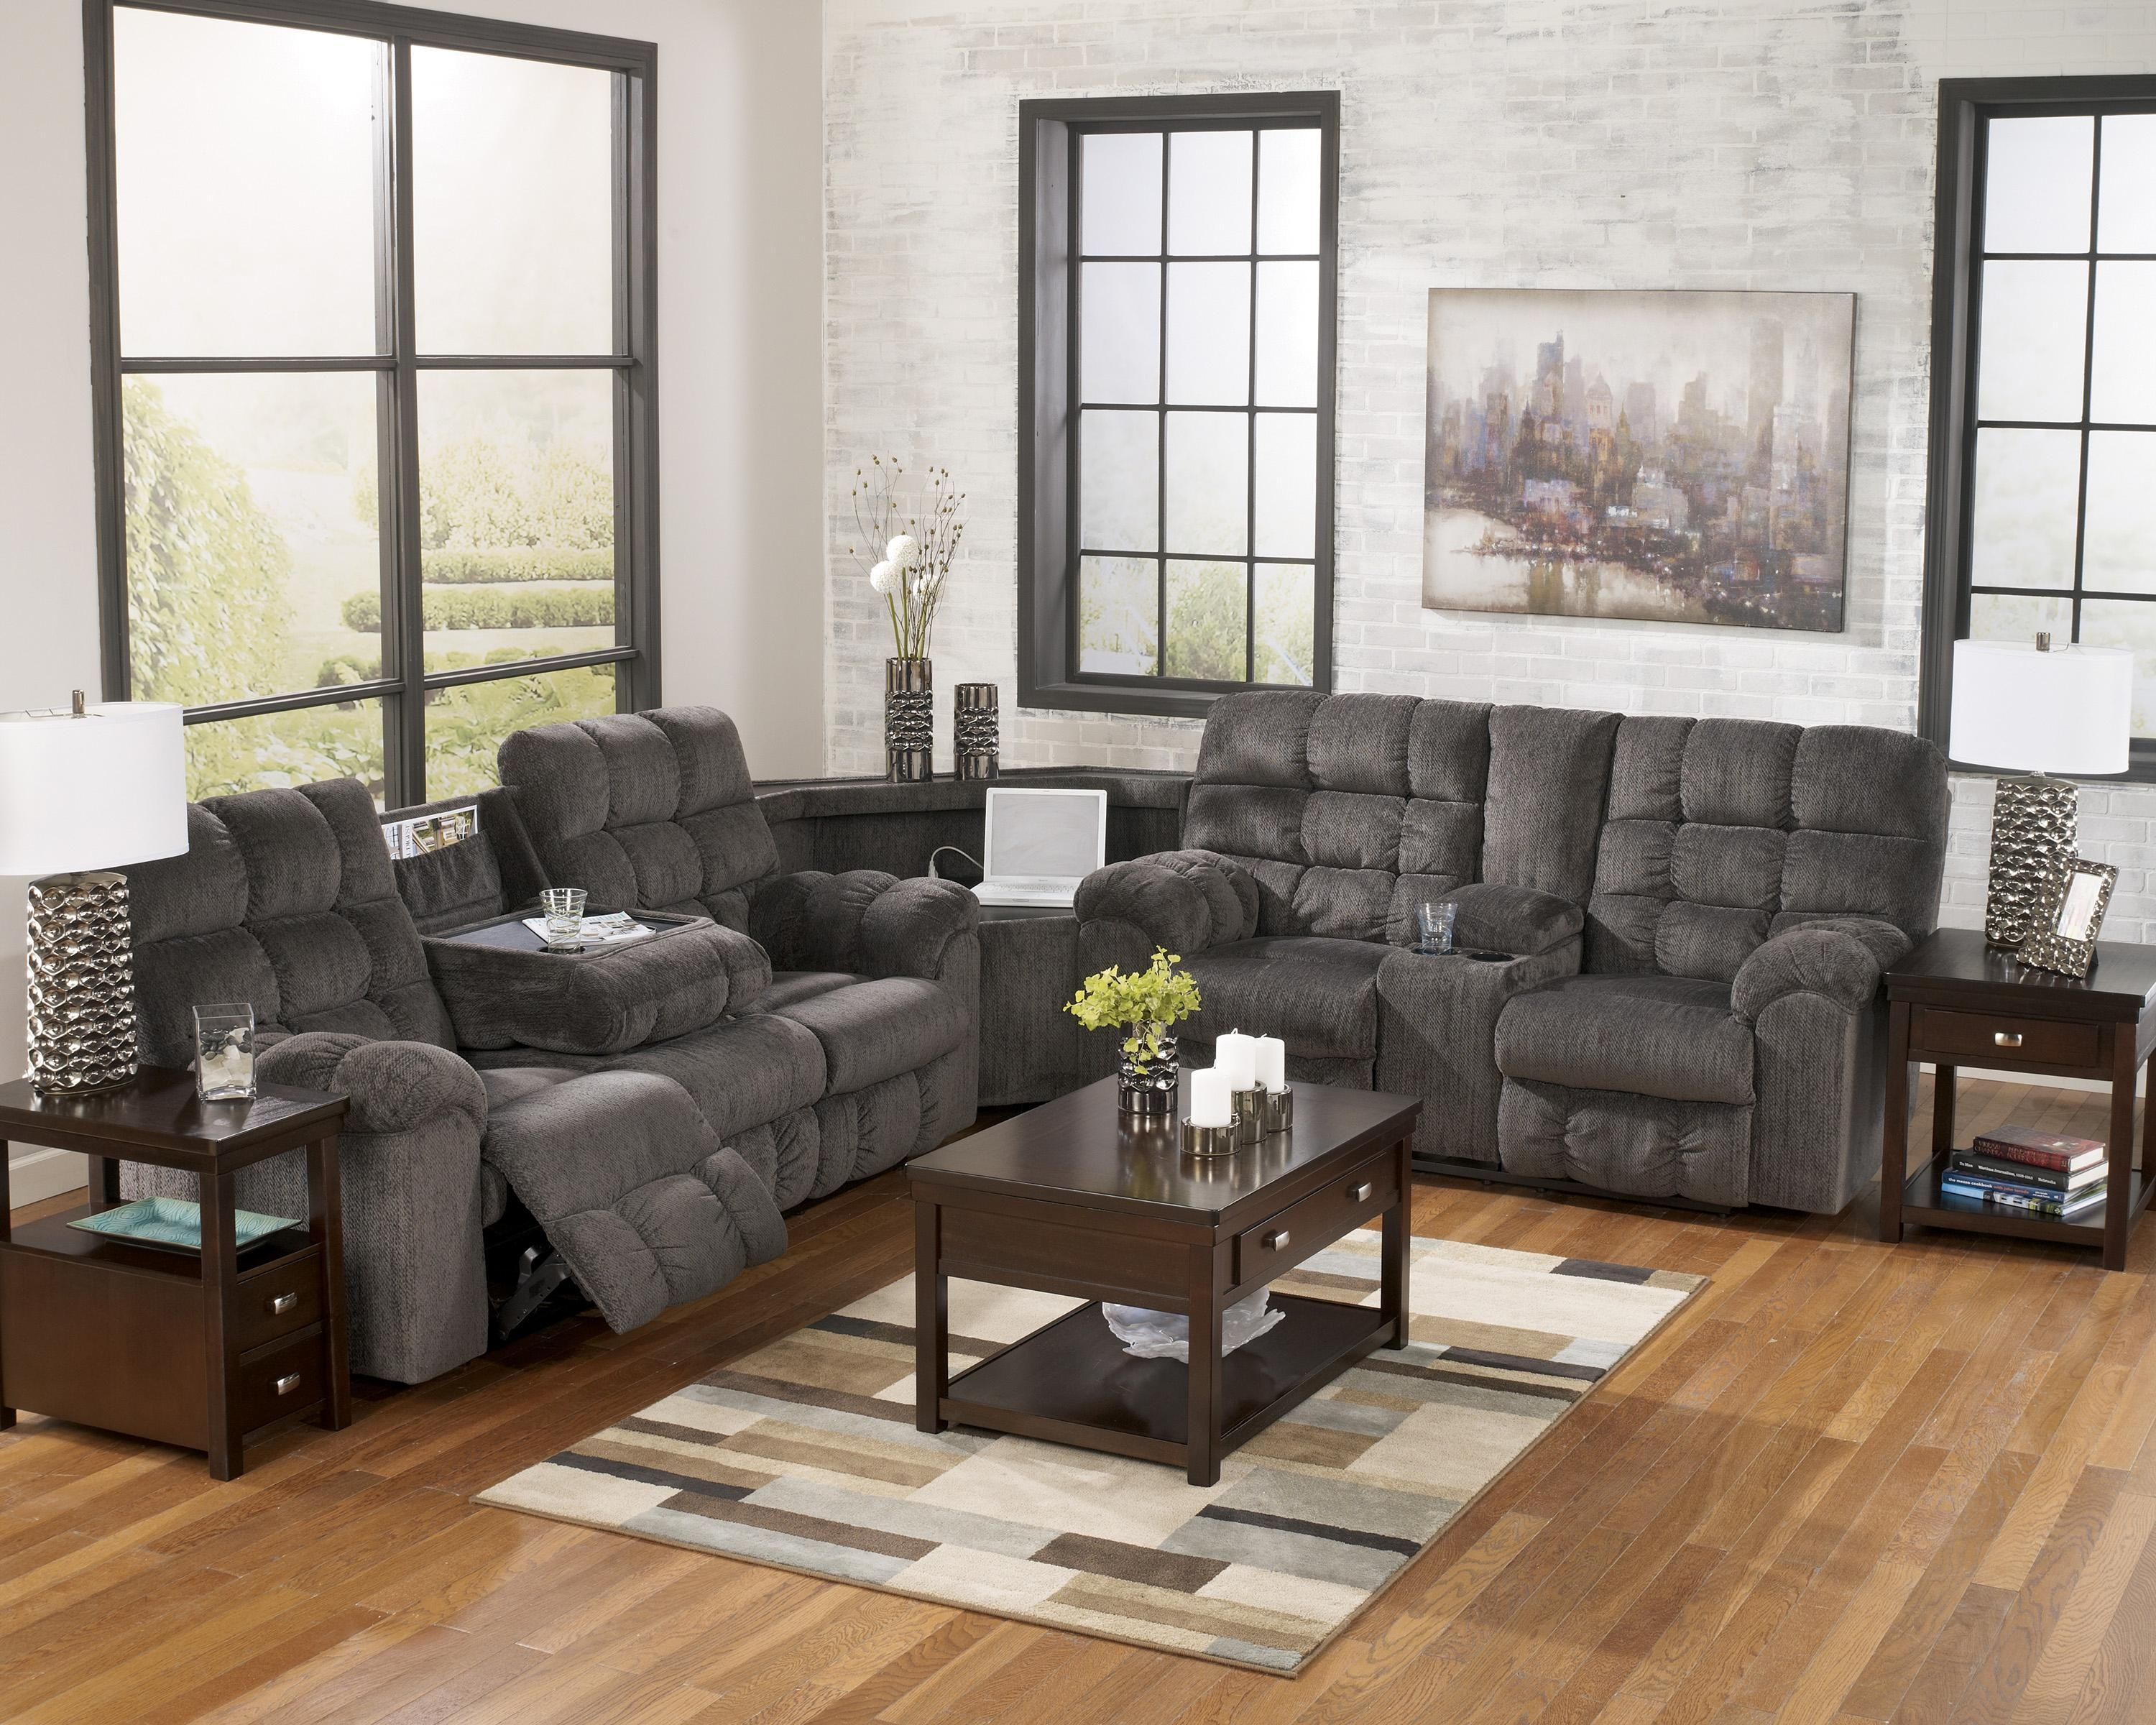 Reclining Sectional Sofa With Right Side Loveseat, Cup Holders And Pertaining To Sectional With Cup Holders (View 4 of 20)